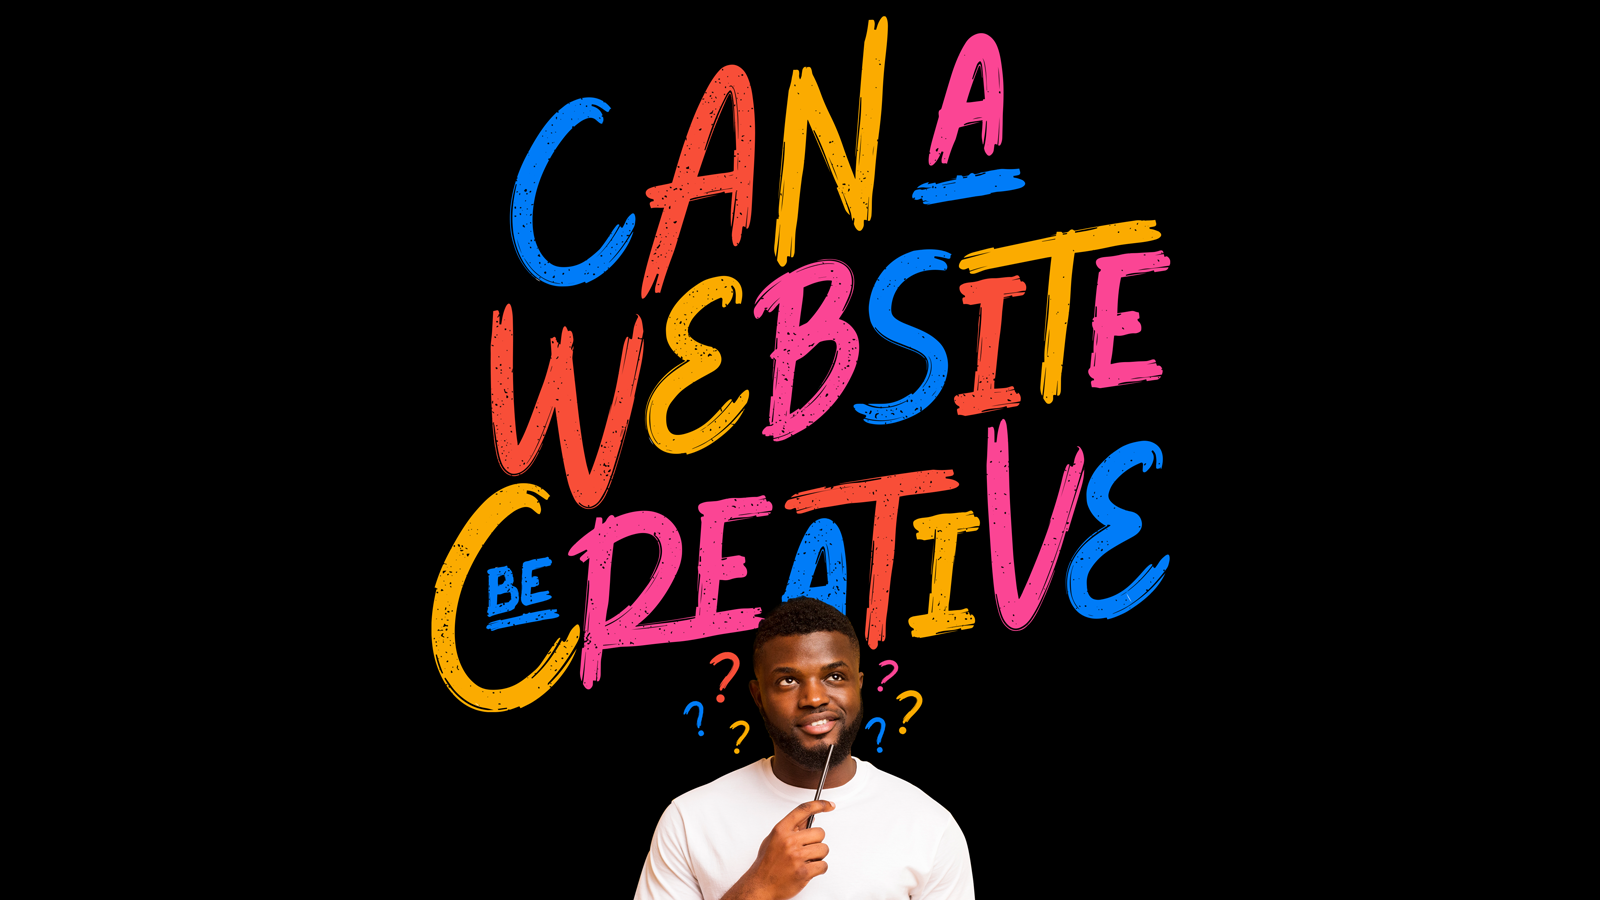 can-a-website-be-creative-article-header-image